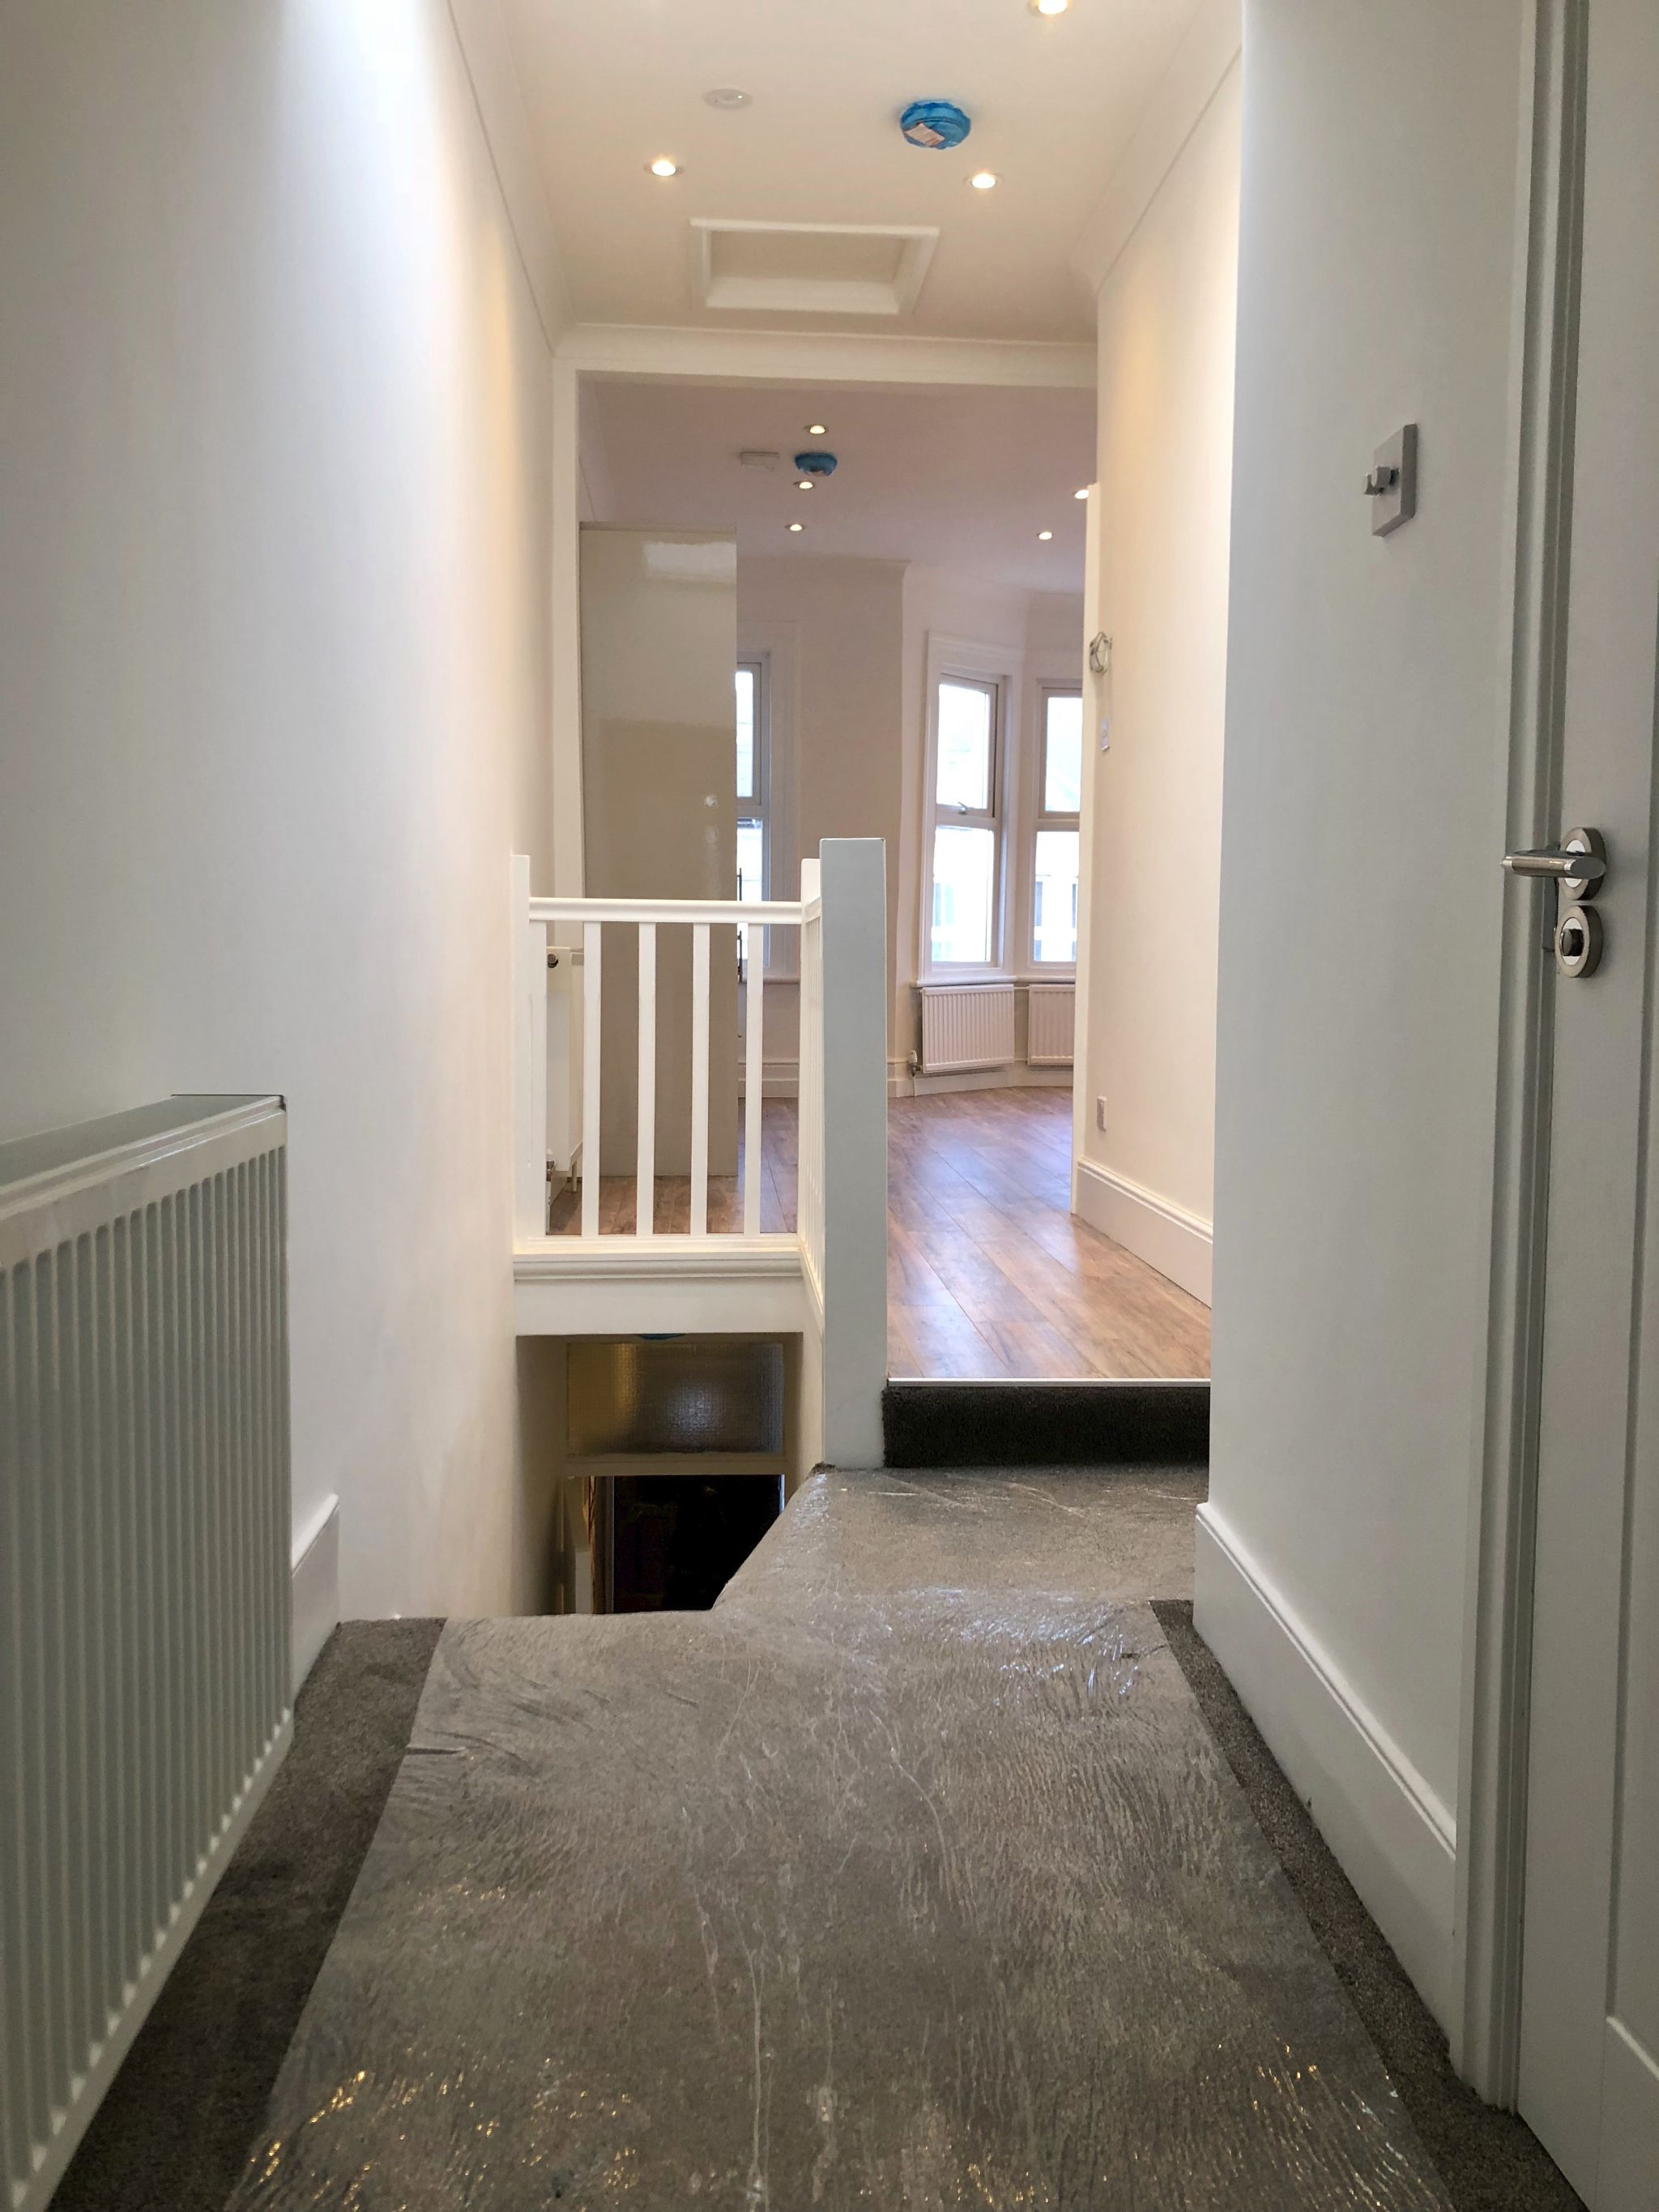 3 bedroom flat flat/apartment To Let in London - ENTRANCE HALLWAY